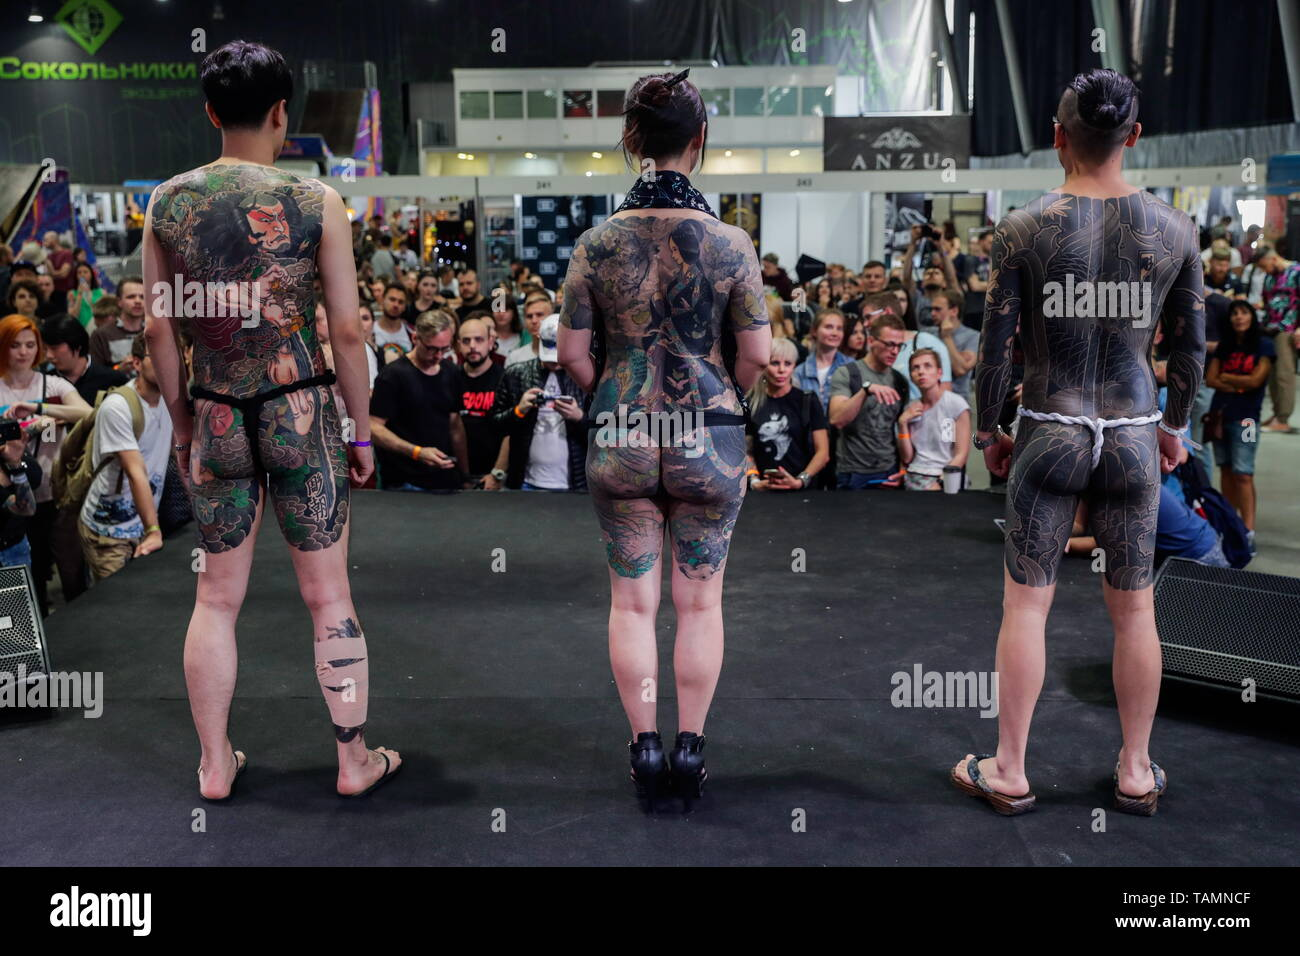 Tattoo Models Stock Photos & Tattoo Models Stock Images - Alamy